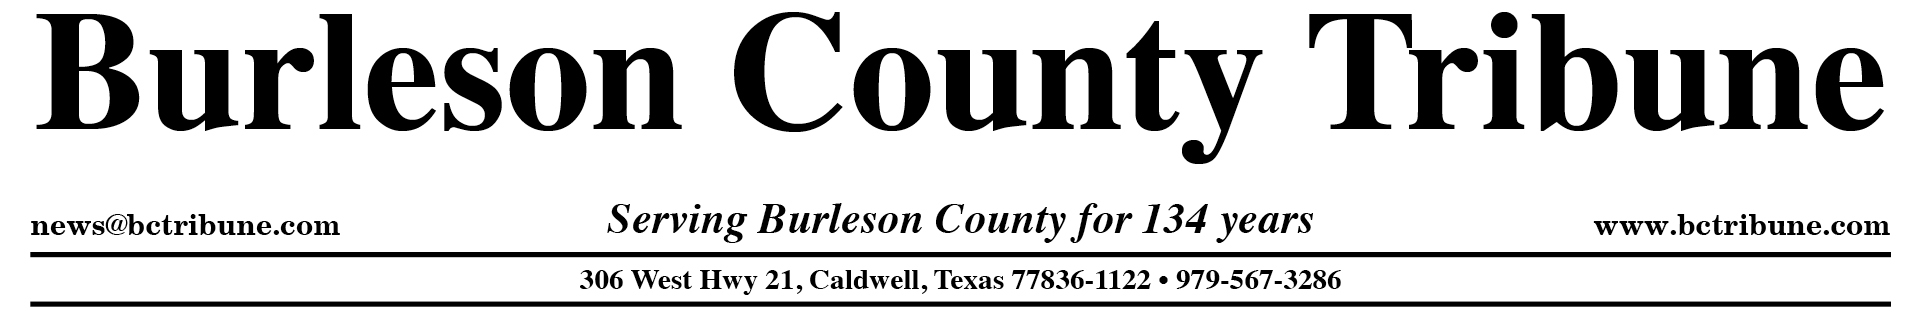 Burleson County Tribune |